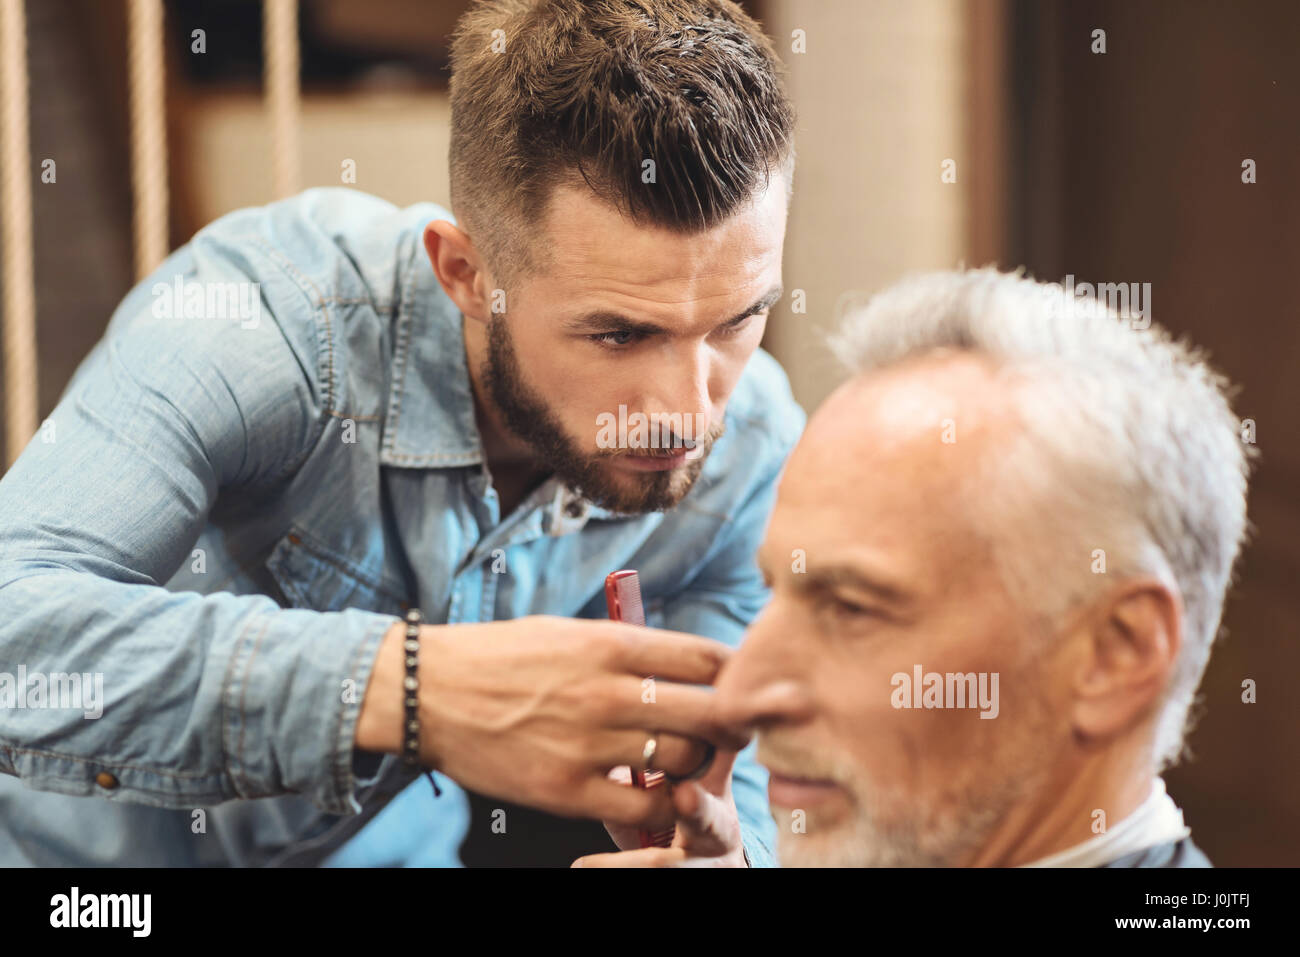 Proficient Hairdresser Designing Haircut In The Barbershop Stock